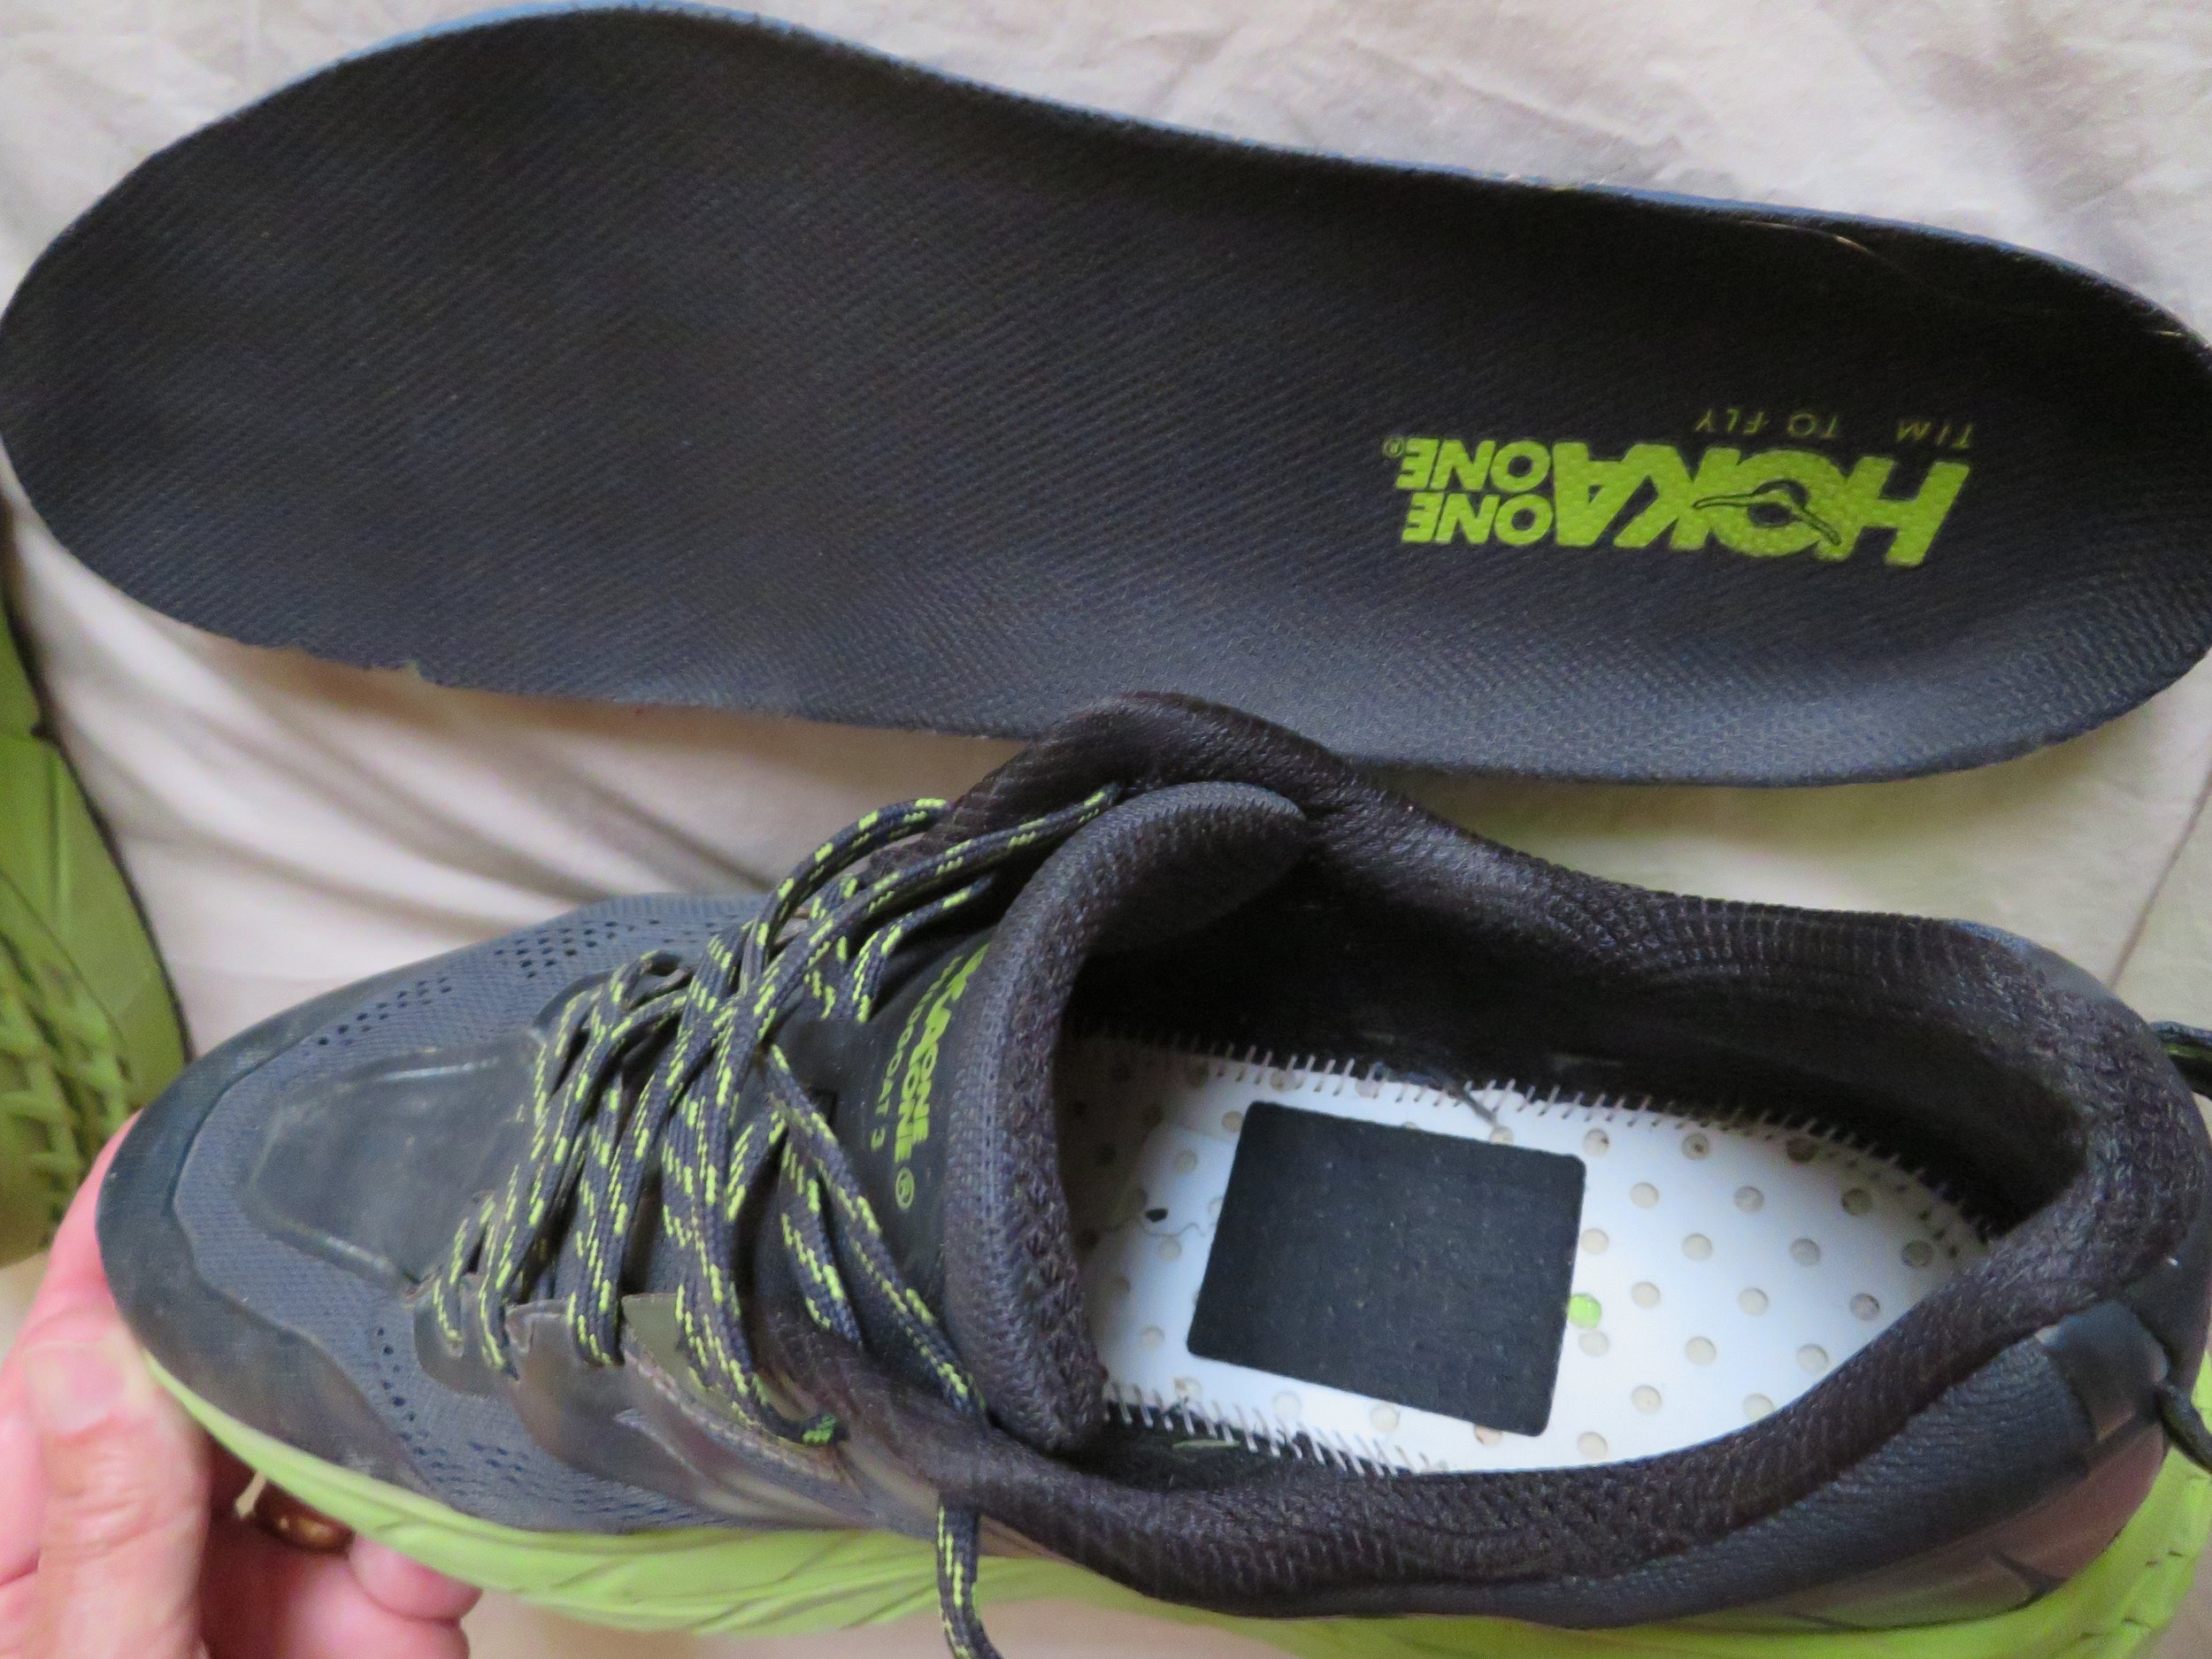 Zorpads stuck in place under the insole